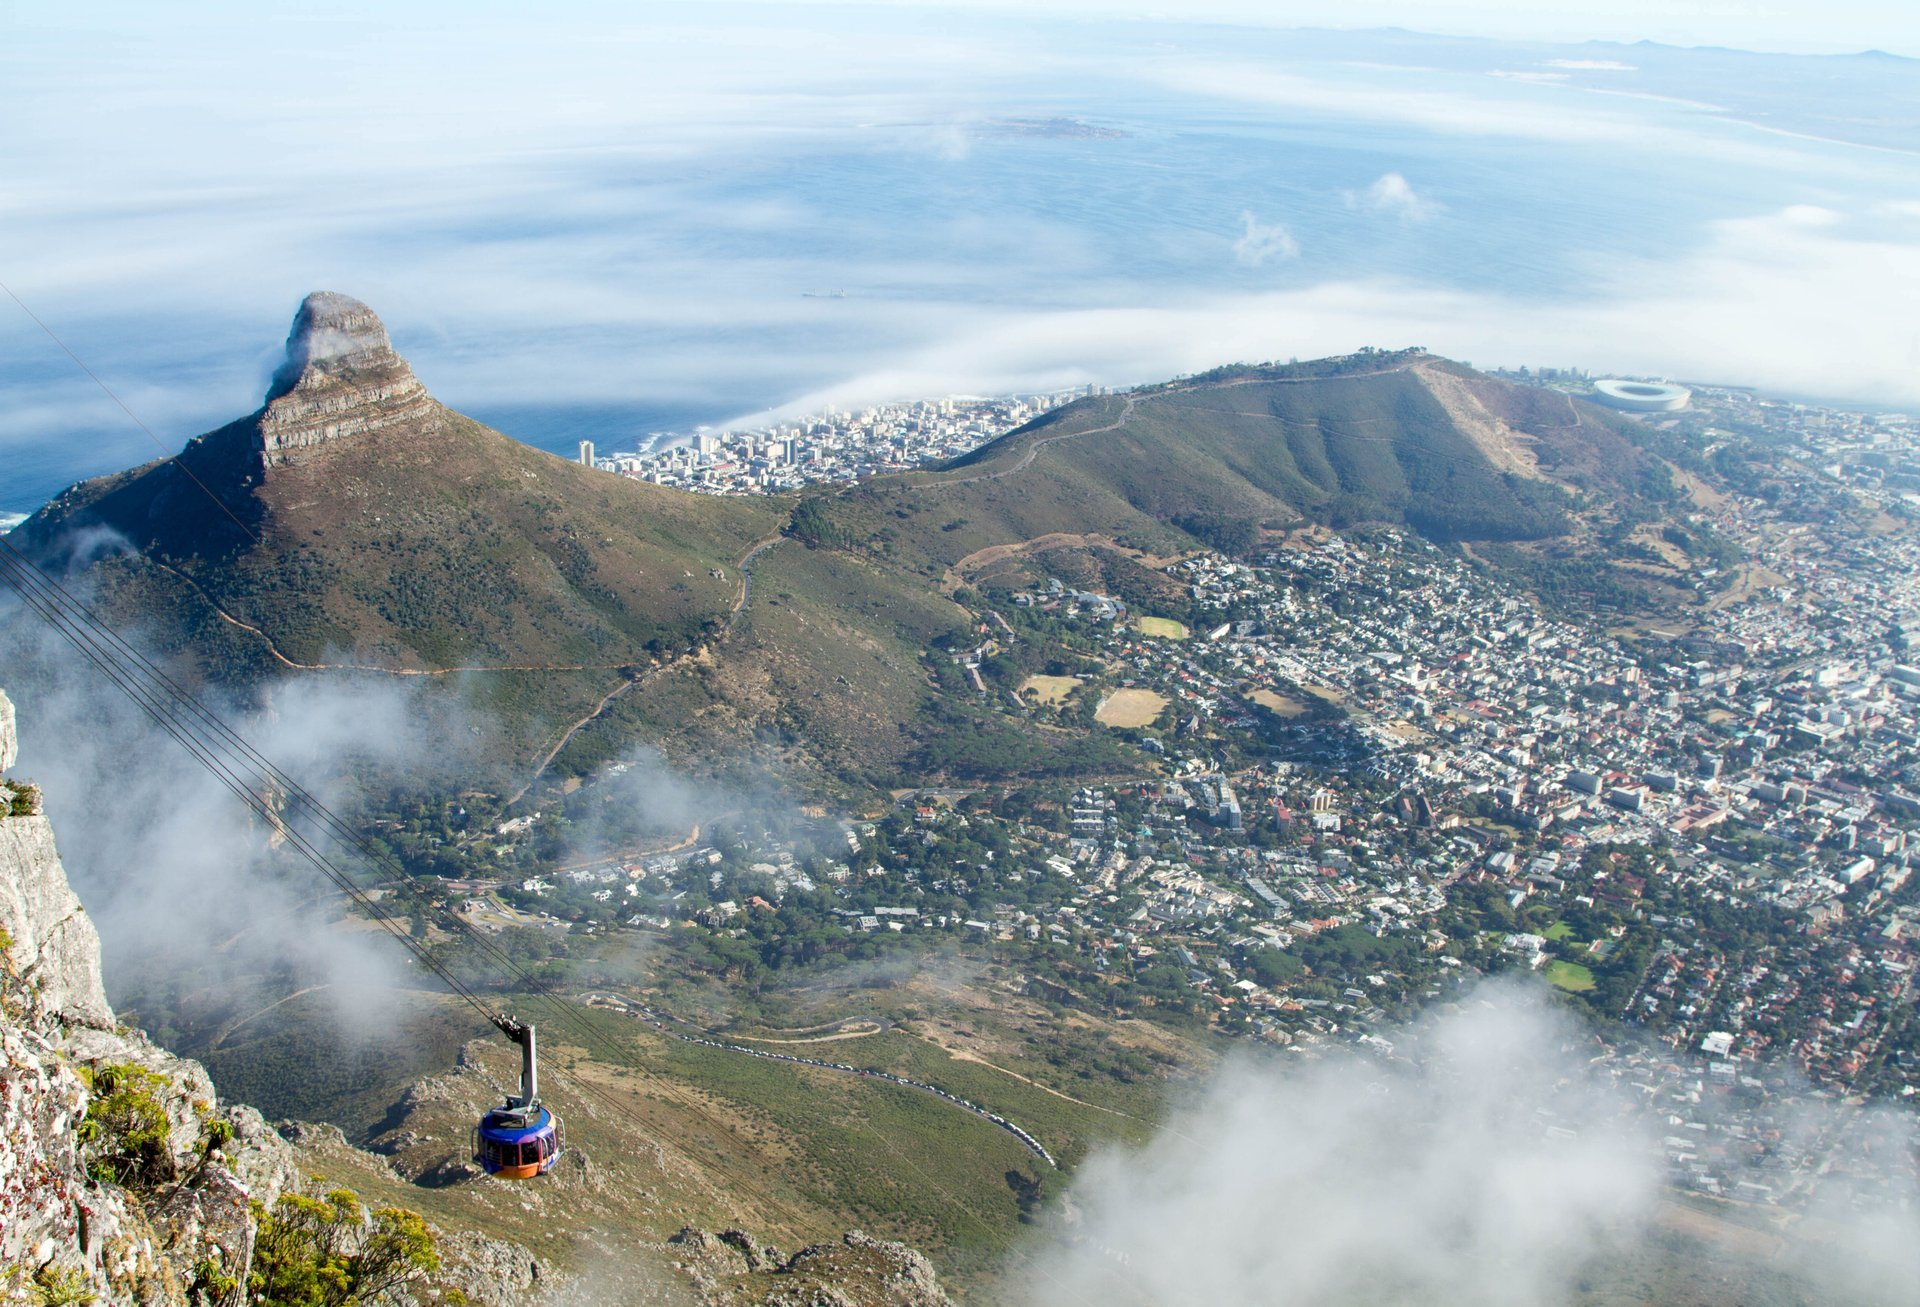 Table Mountain Hiking in Cape Town 2020 - Best Time